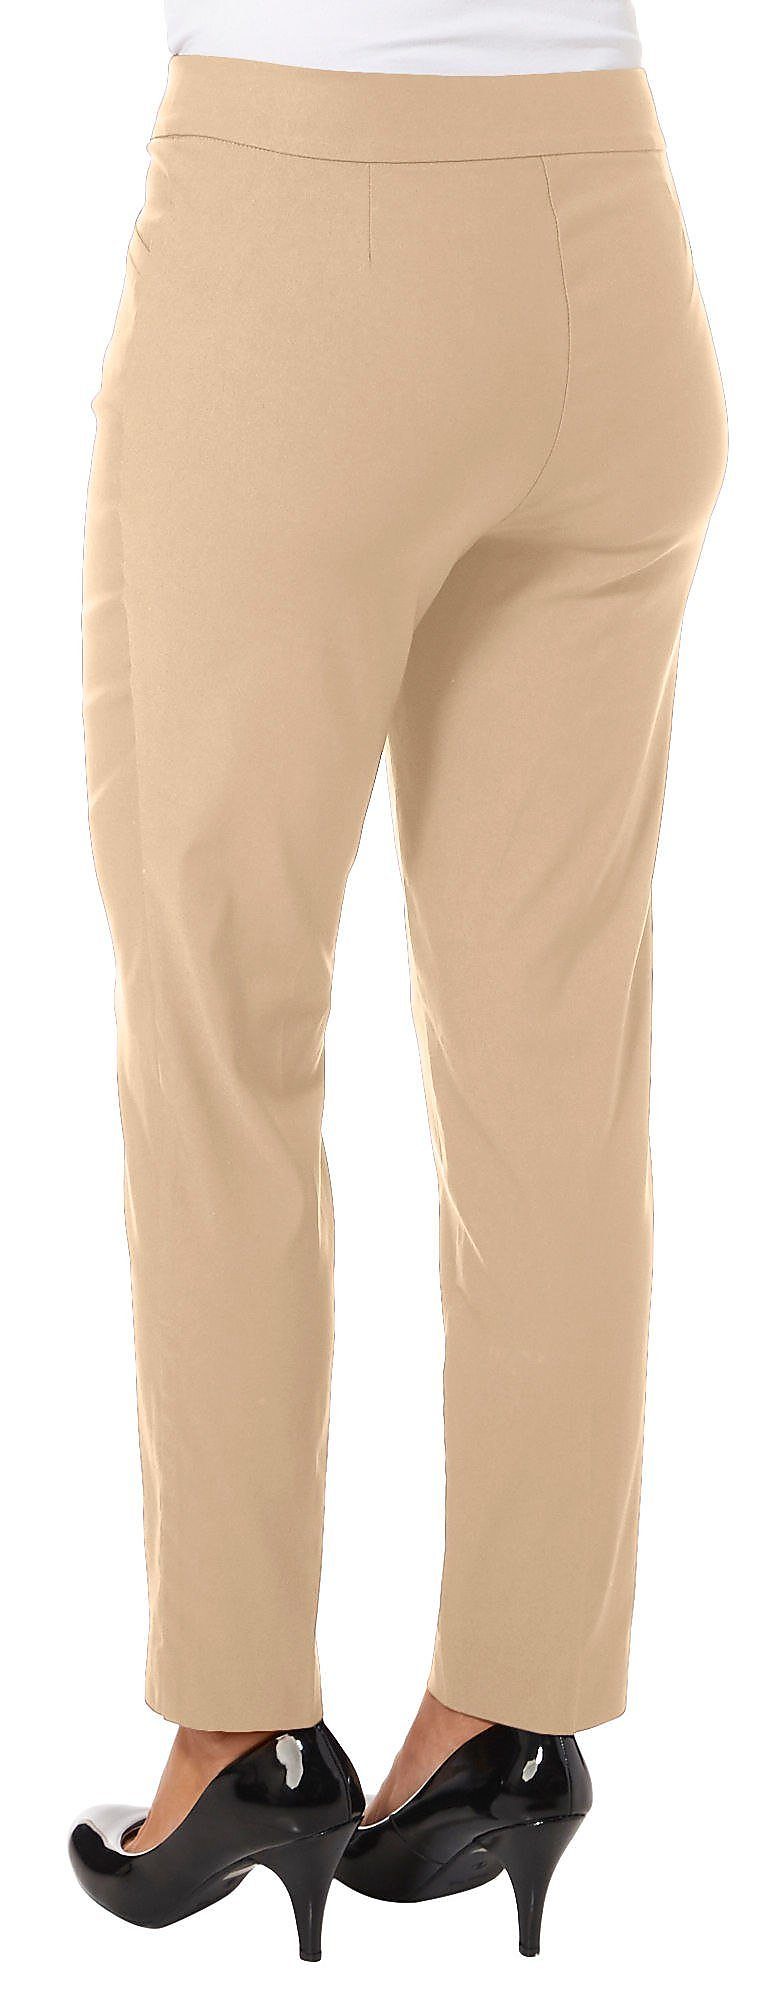 b0f93de111a Counterparts Womens Solid Luxe Stretch Pull On Pants